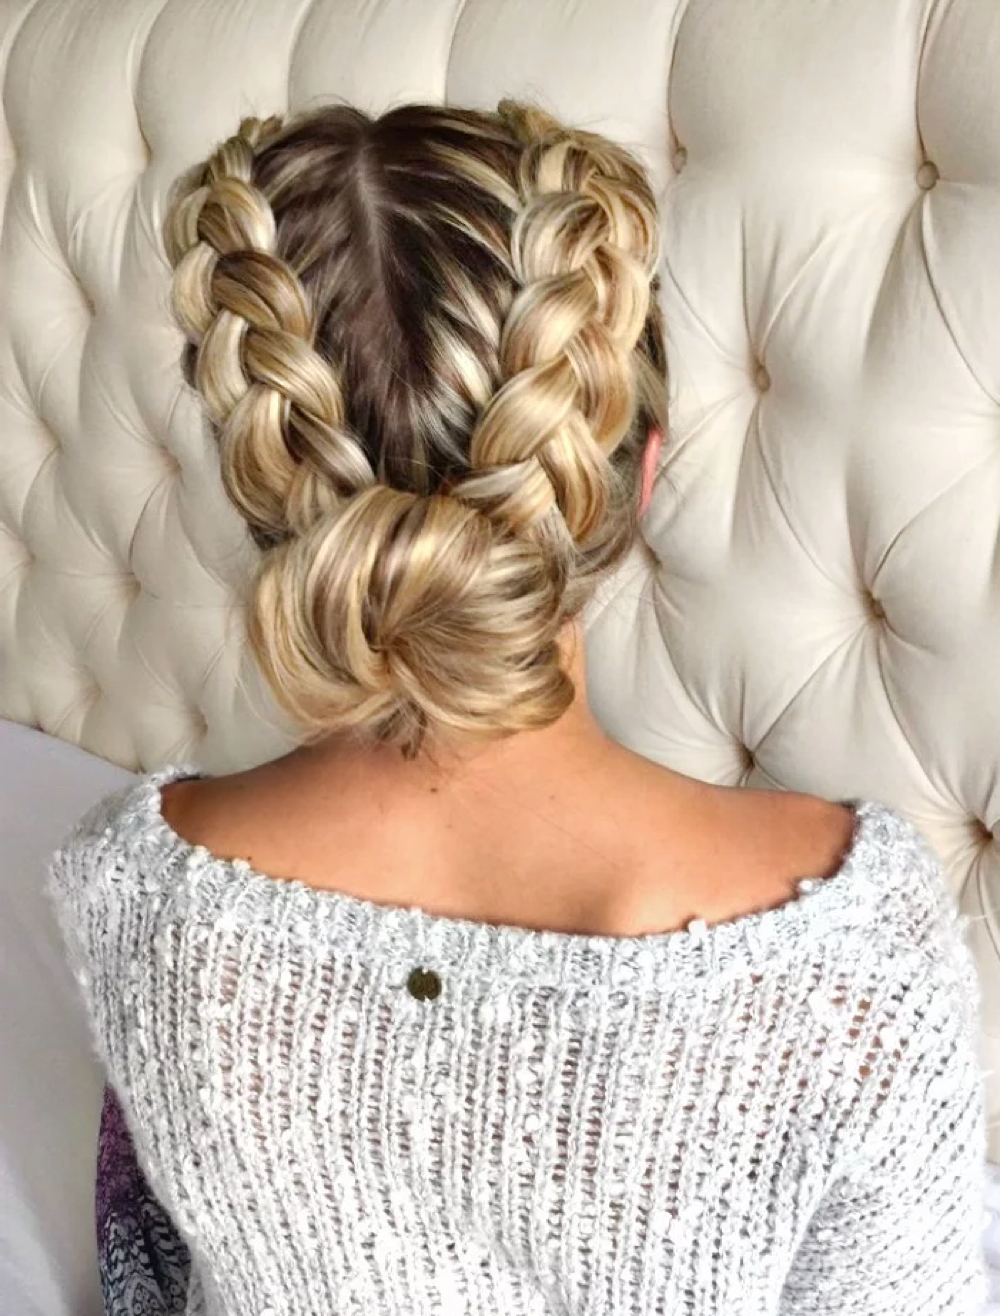 29 Gorgeous Braided Updo Ideas For 2019 In Most Current Double Crown Braid Prom Hairstyles (View 2 of 20)